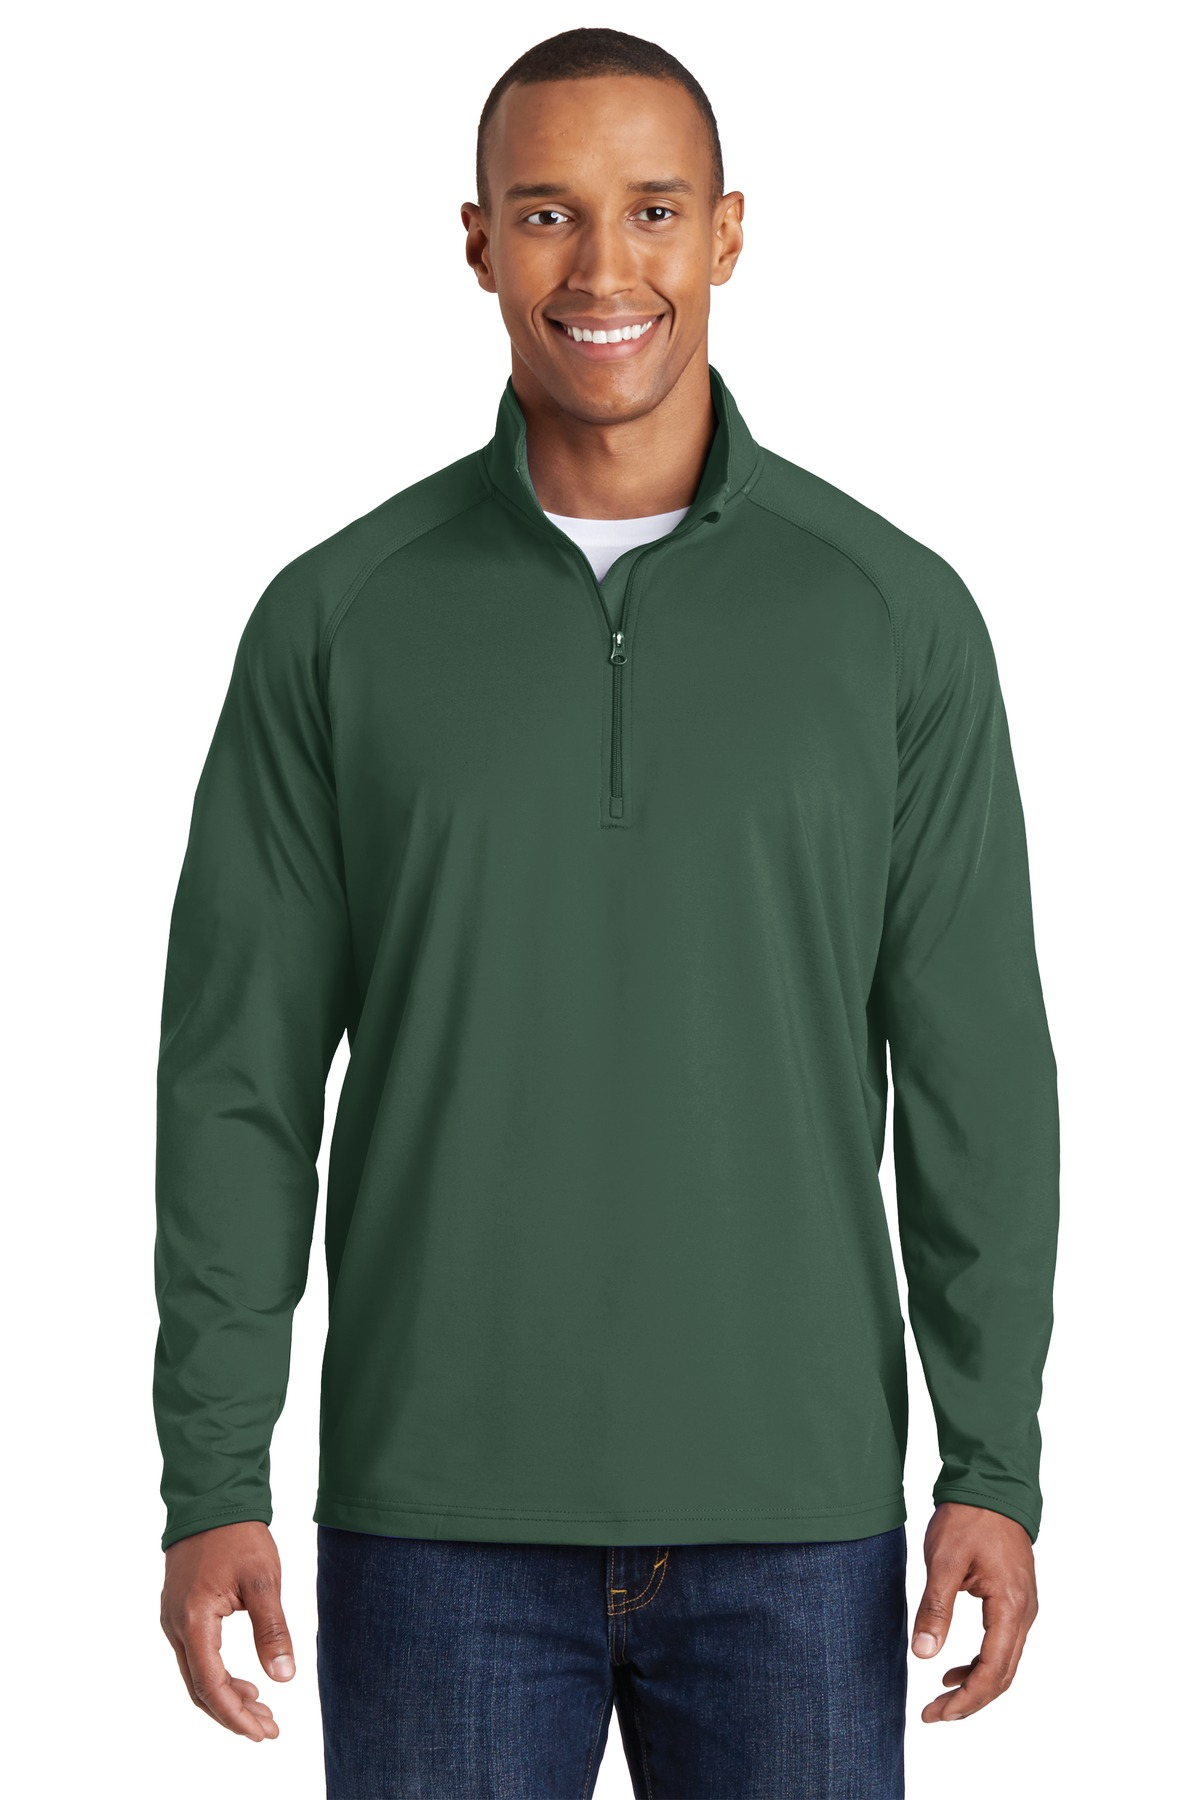 Sport-Tek ®  Sport-Wick ®  Stretch 1/2-Zip Pullover. ST850 - Forest Green